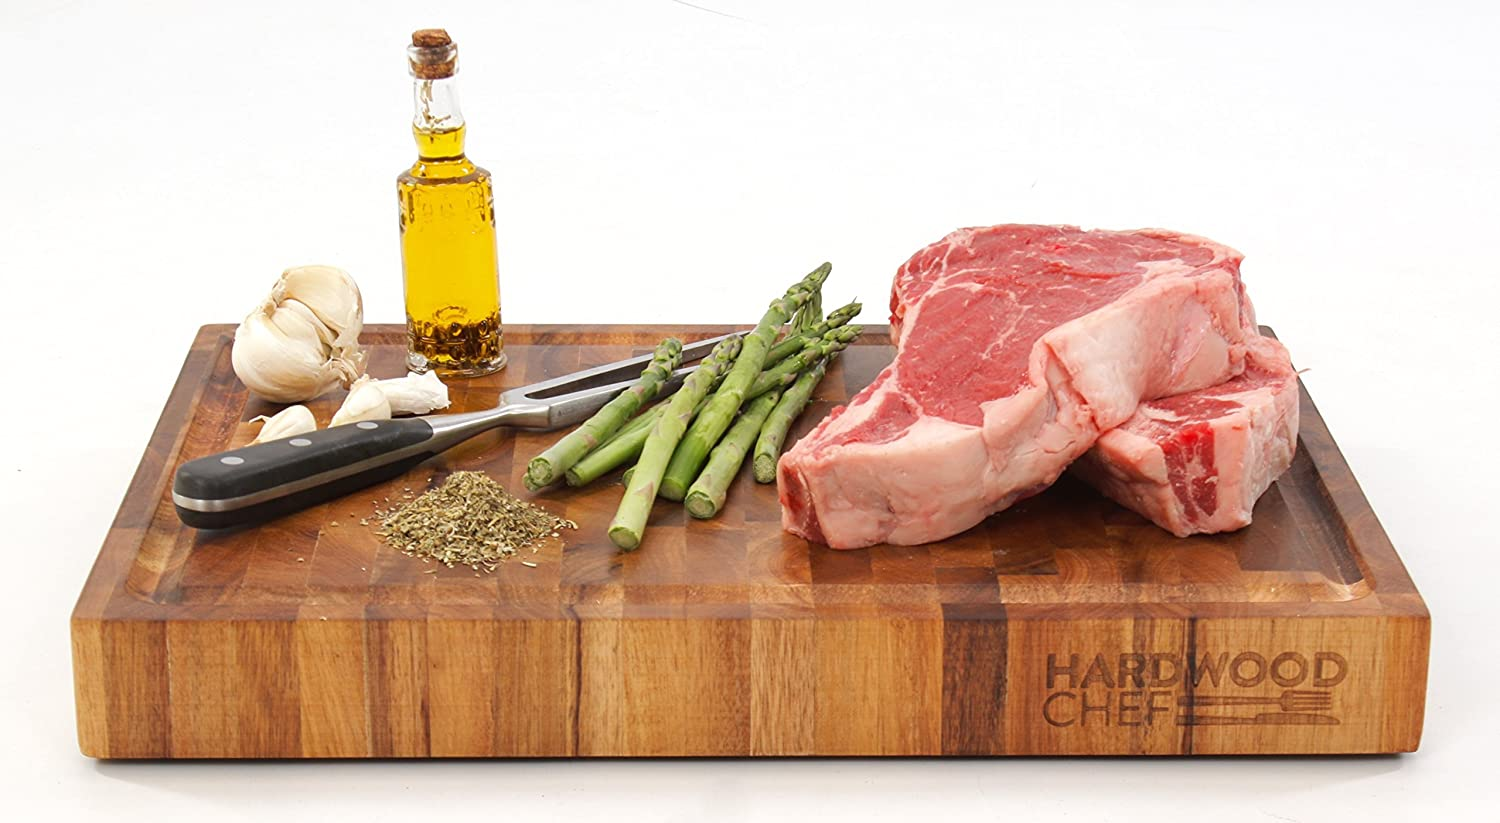 Hardwood Chef Premium Thick Acacia Wood End Grain Cutting Board Butcher Block with Groove, 16 x 12 x 1 3/4 in | For Chopping & Serving Cheese | (Gift Box Included) with BONUS e-Book